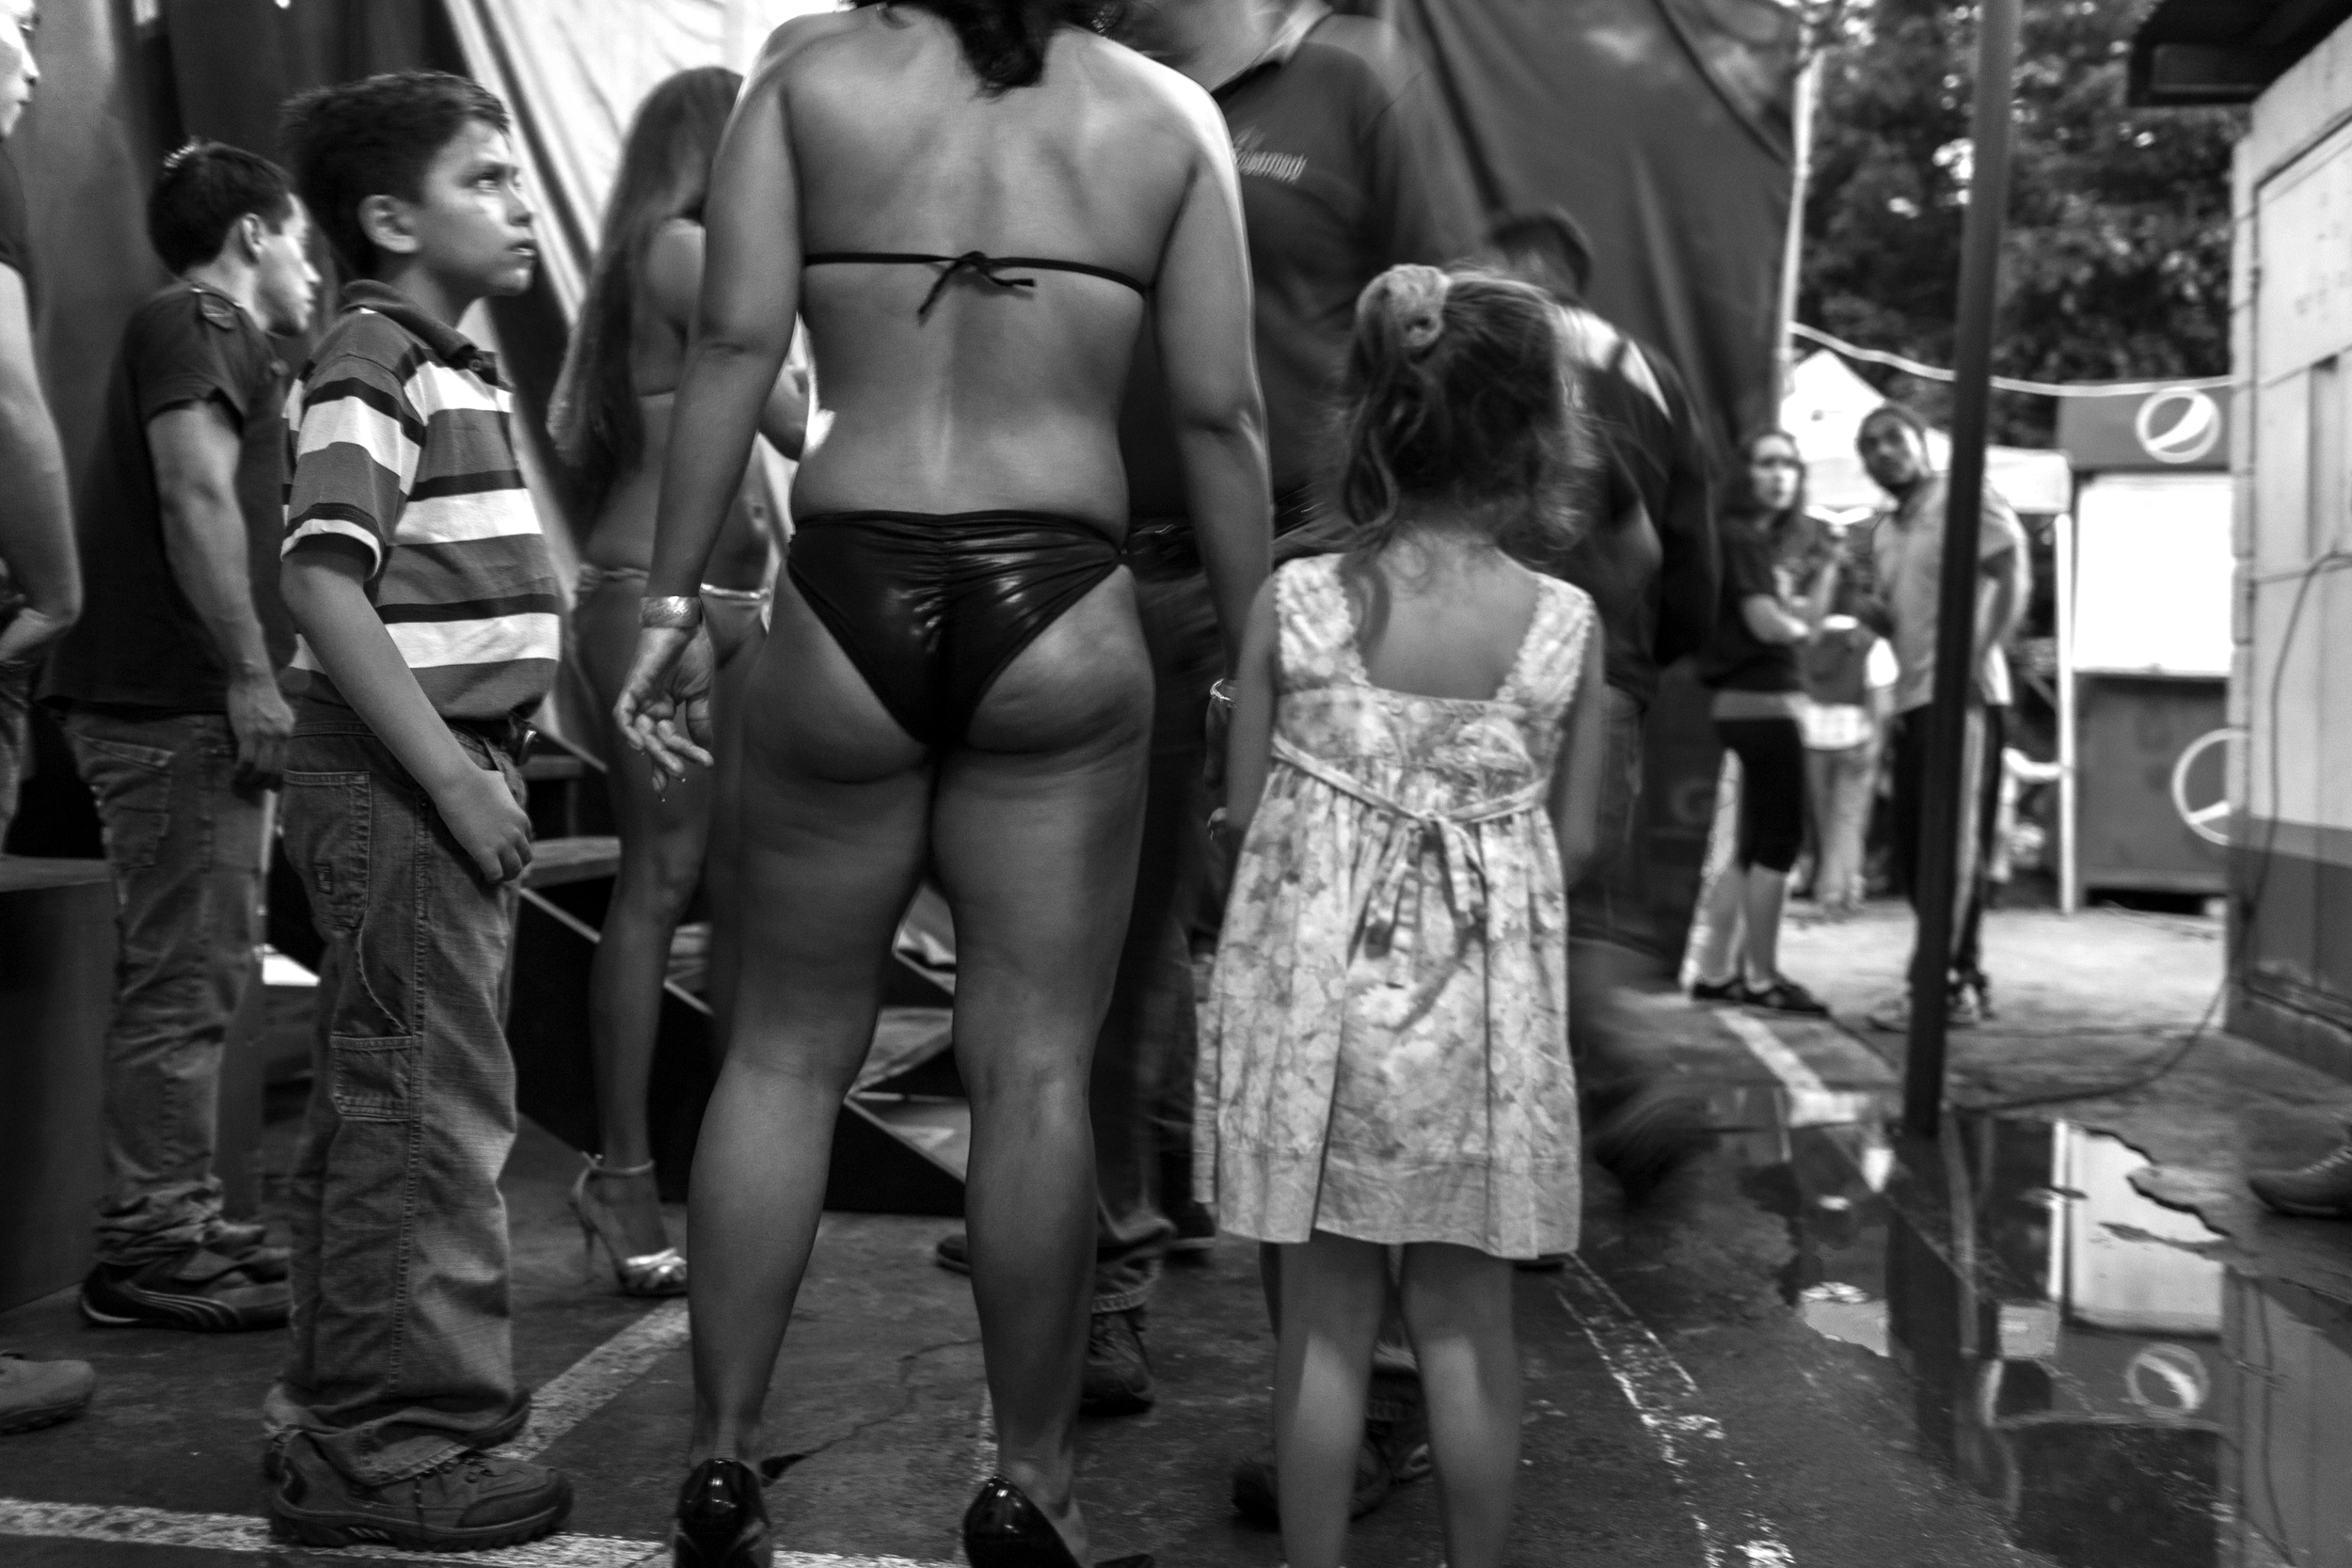 A female bodybuilder and her family backstage at the Gimnasio La Fábrica bodybuilding contest in Antigua, Guatemala.